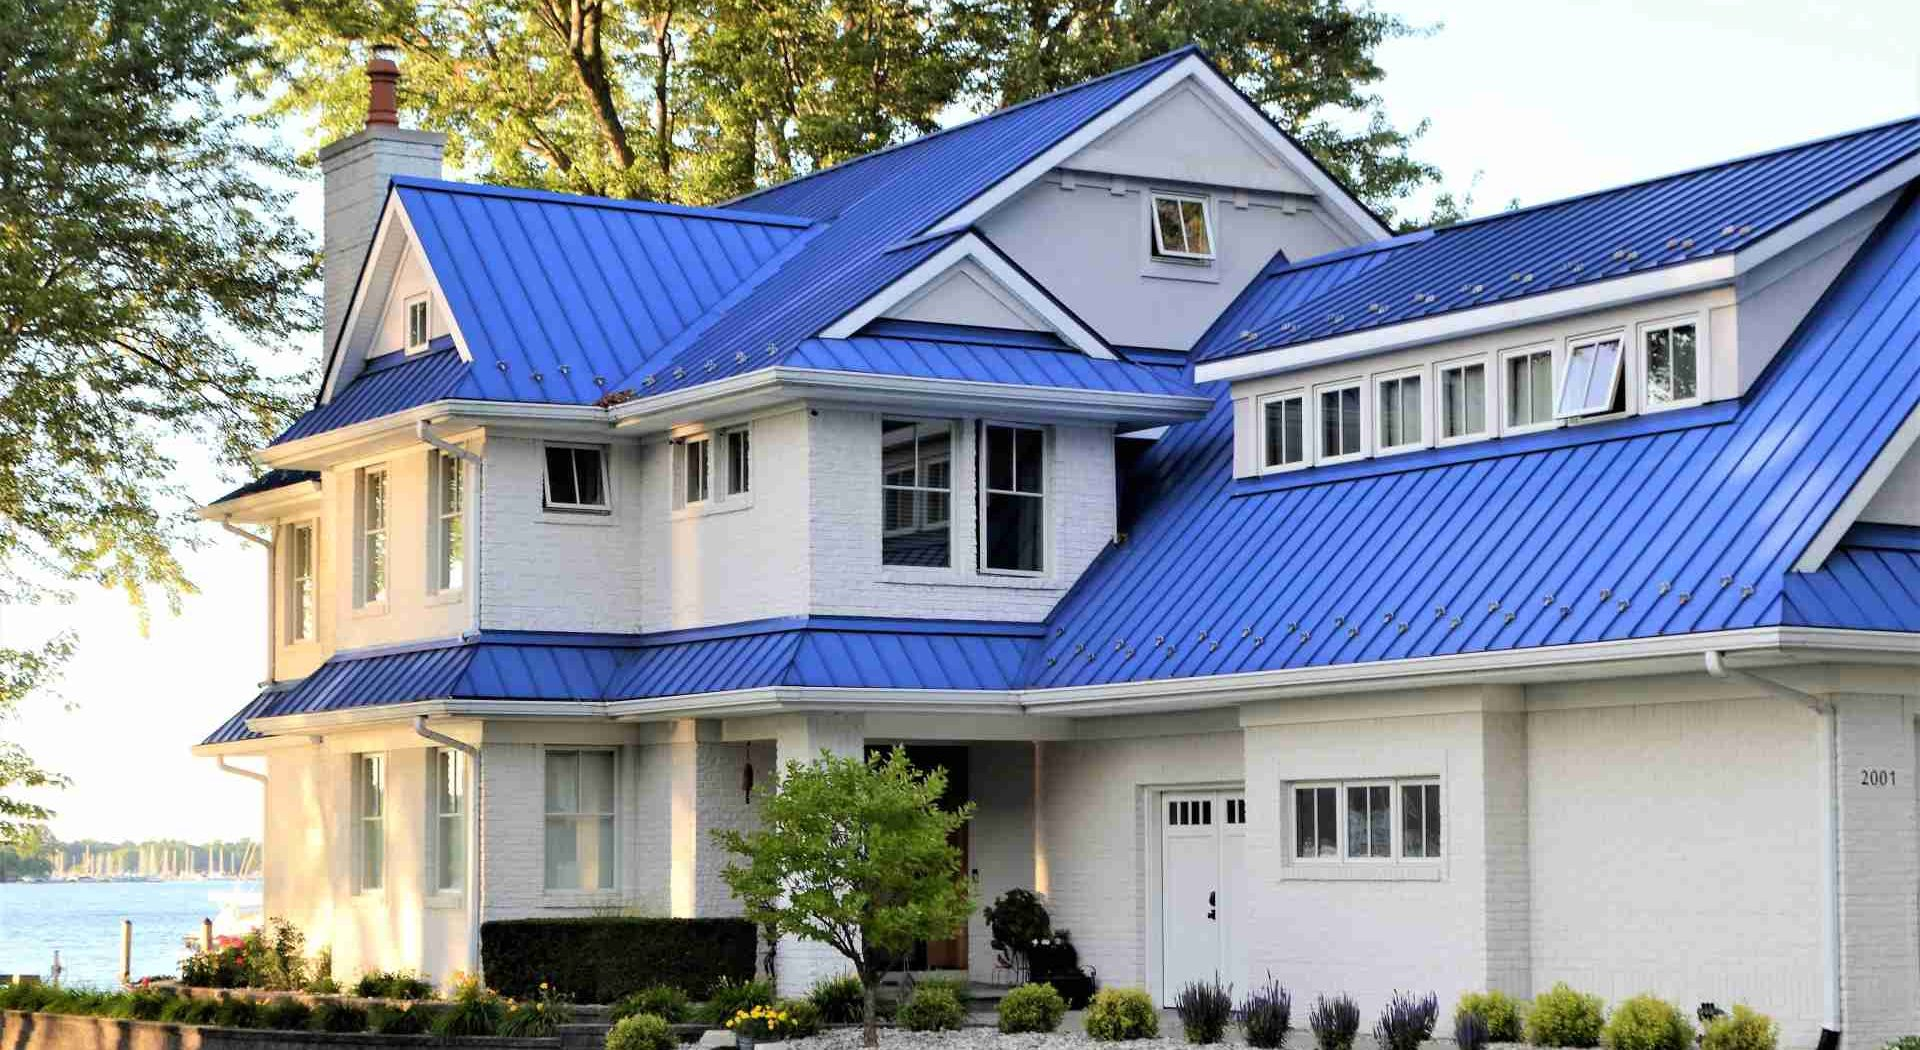 5 Warning Signs You May Need a Roof Replacement